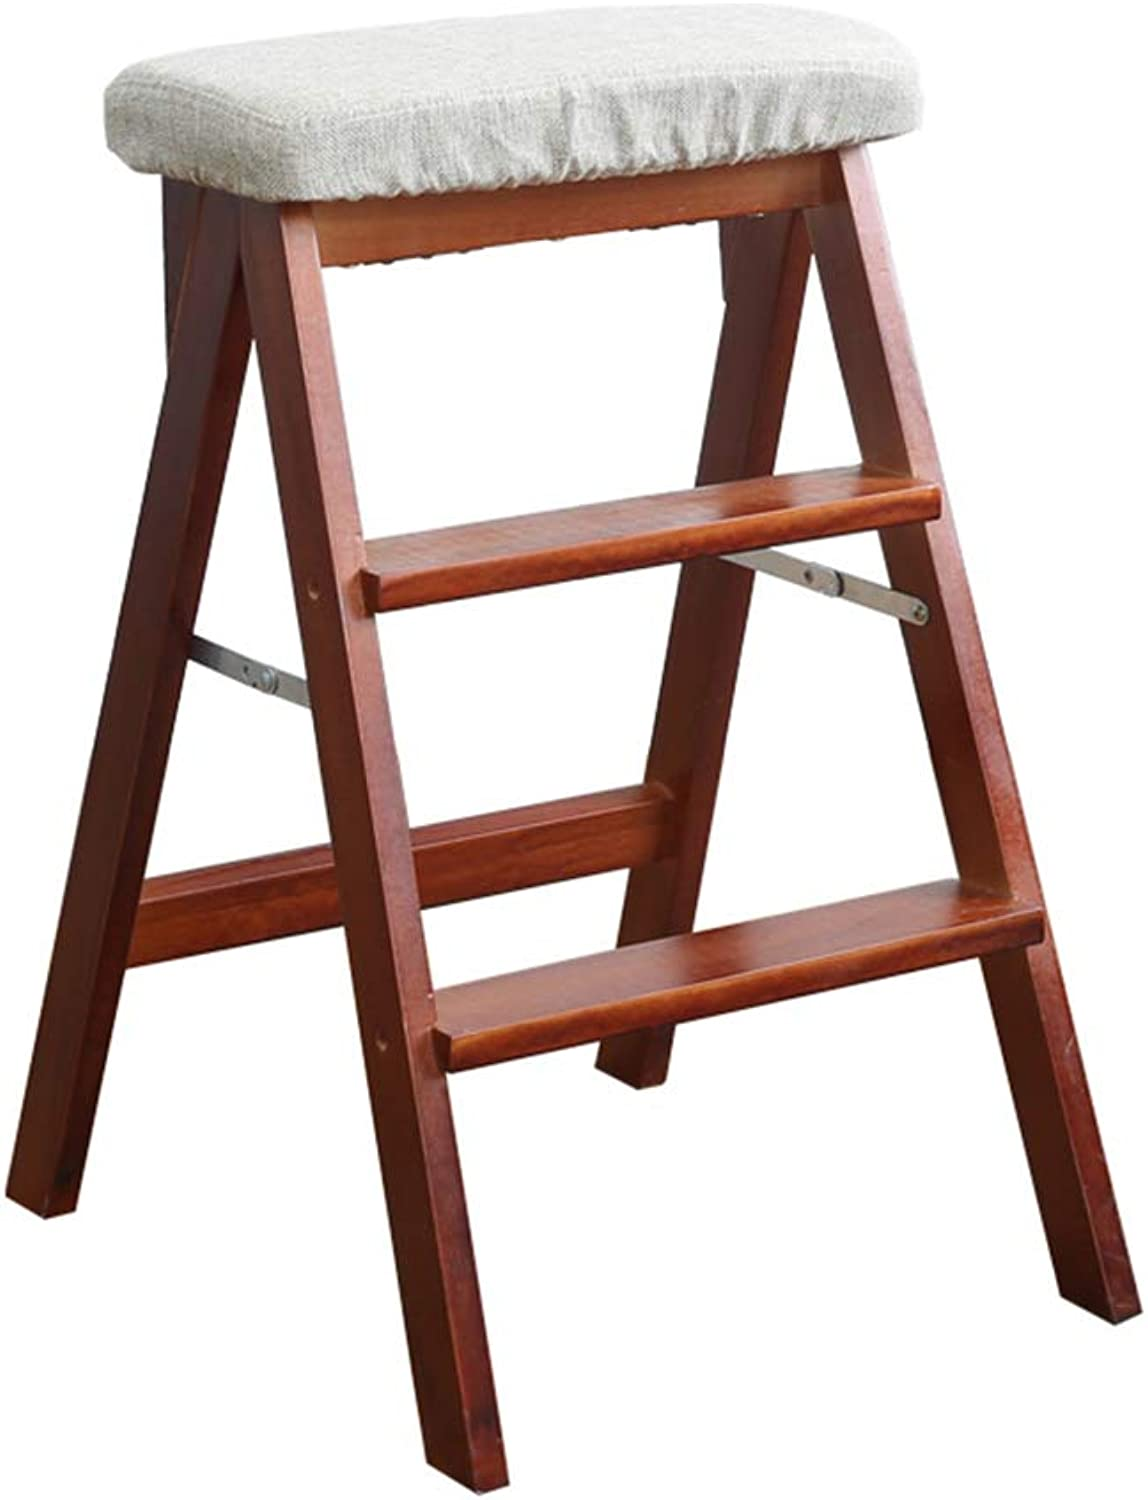 LIXIONG Folding Ladder High Stool Three Step Ladder Chair Multipurpose Solid Wood, 170 Kg Load Capacity (color   Linen, Size   48x42x67cm)